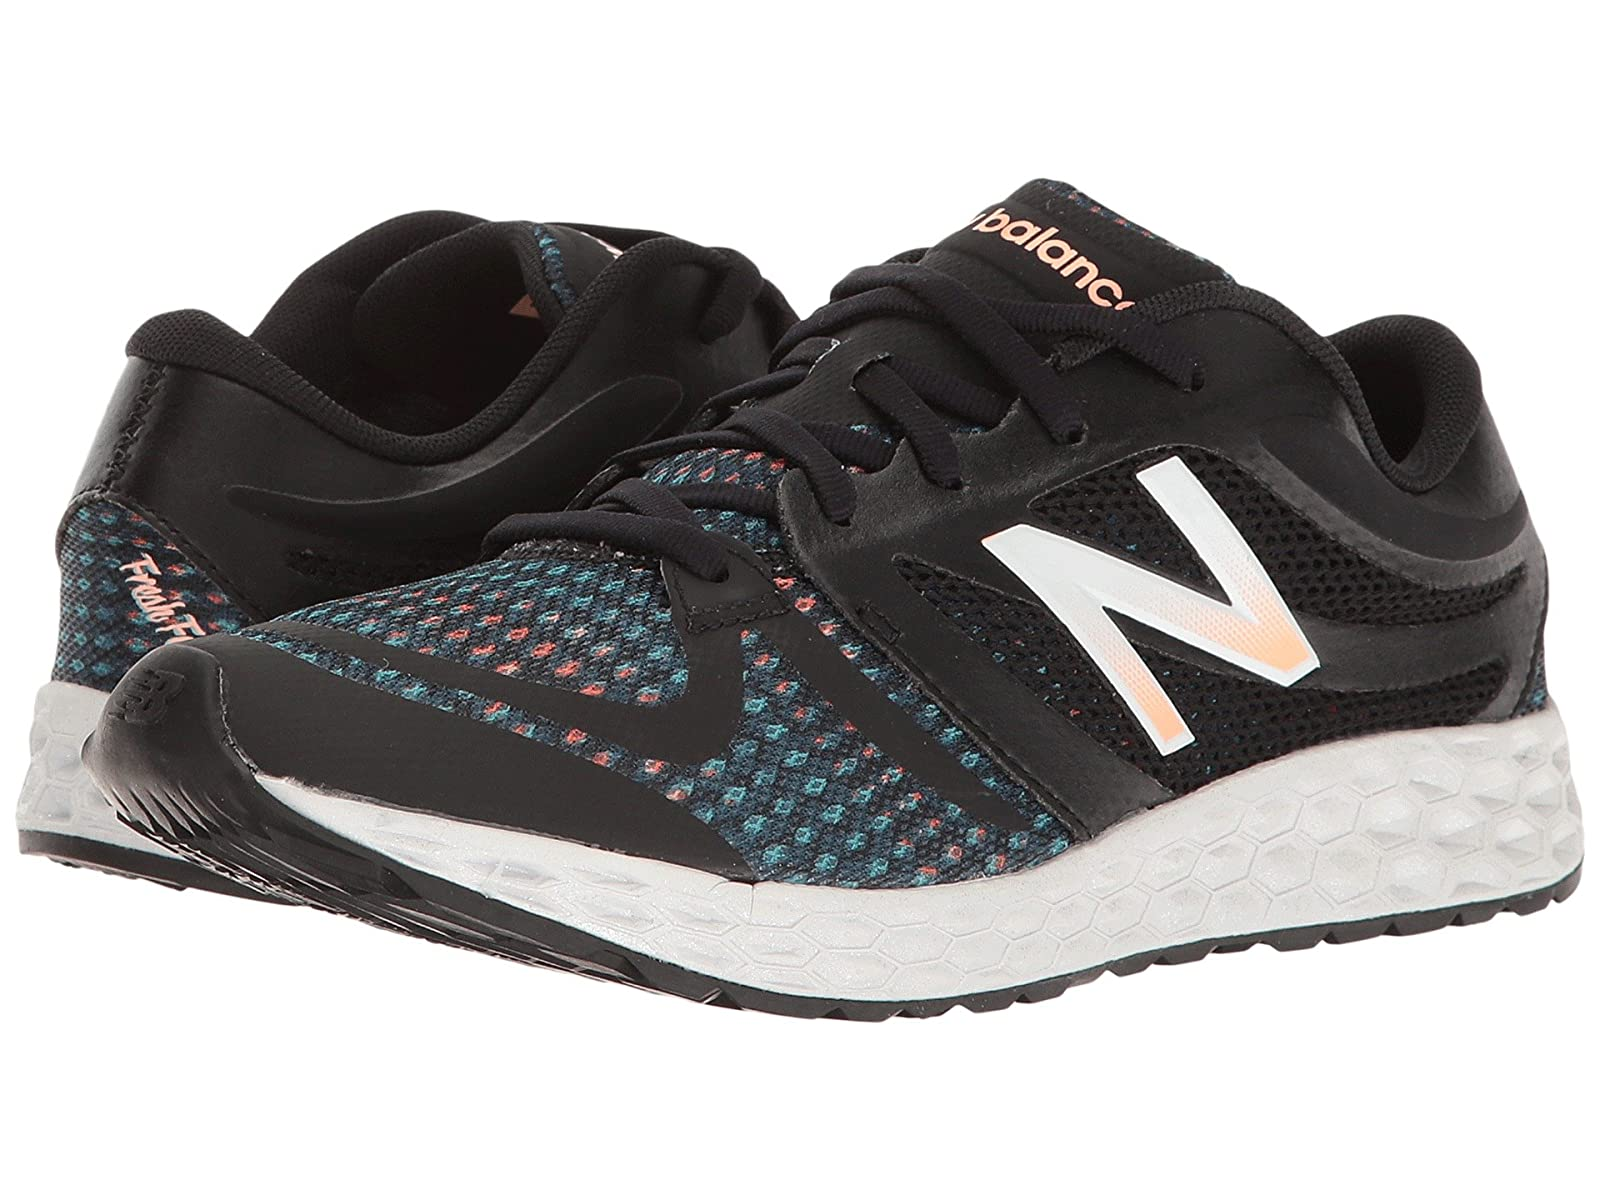 New Balance WX822v3Cheap and distinctive eye-catching shoes